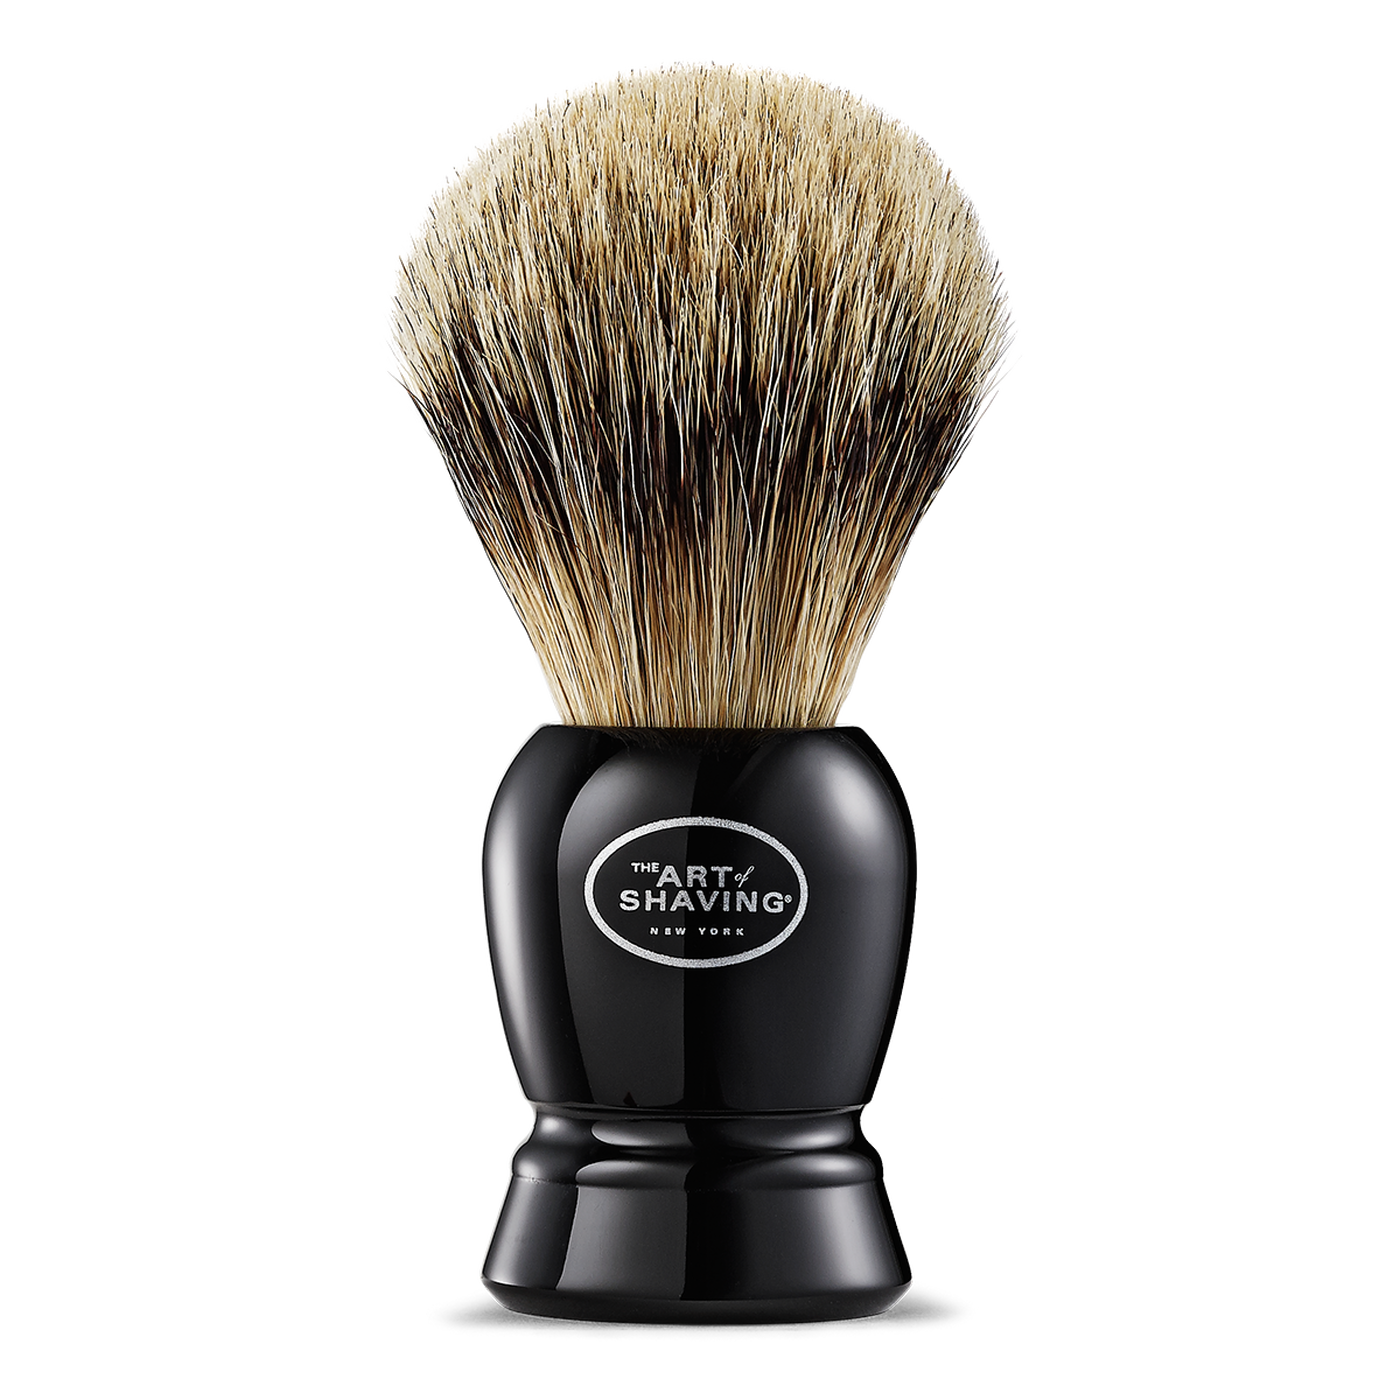 The Art Of Shaving: Fine Badger Shaving Brush - Black #3